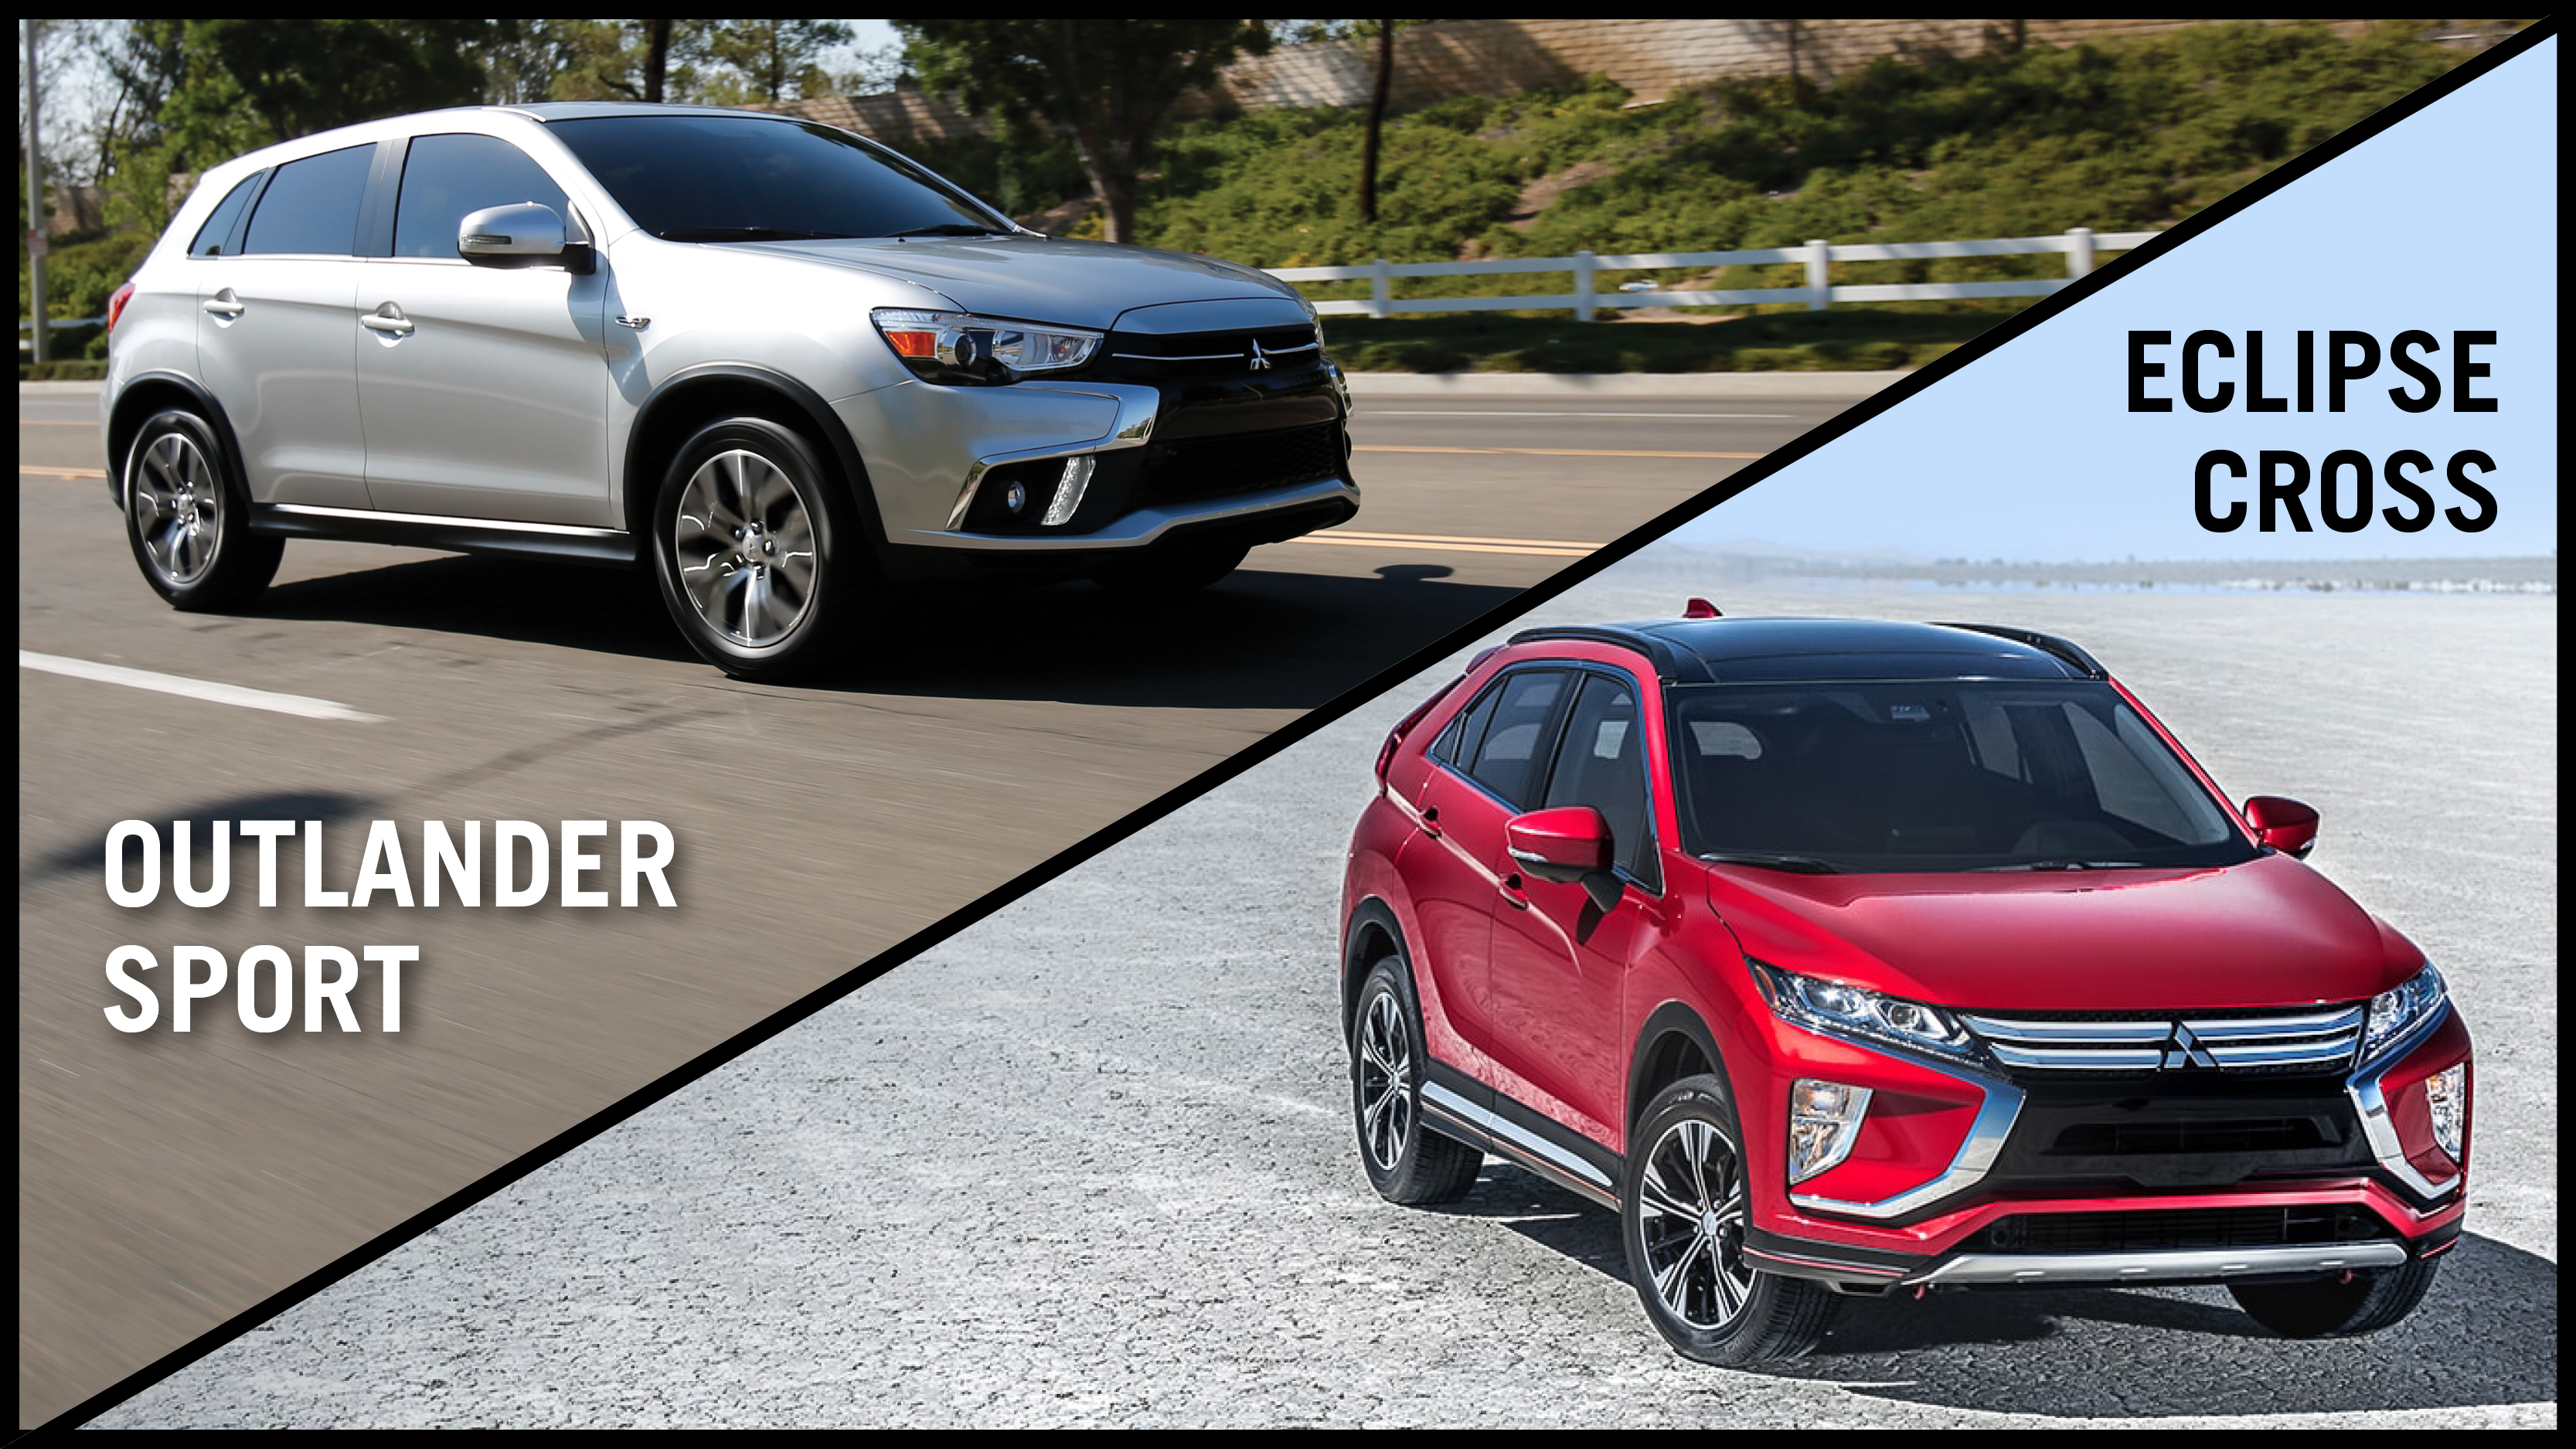 review mitsubishi you prices photos vary on mileage and maintain based depending specific trim your may pa autonation vehicle dealer will outlander drive epa test how ratings